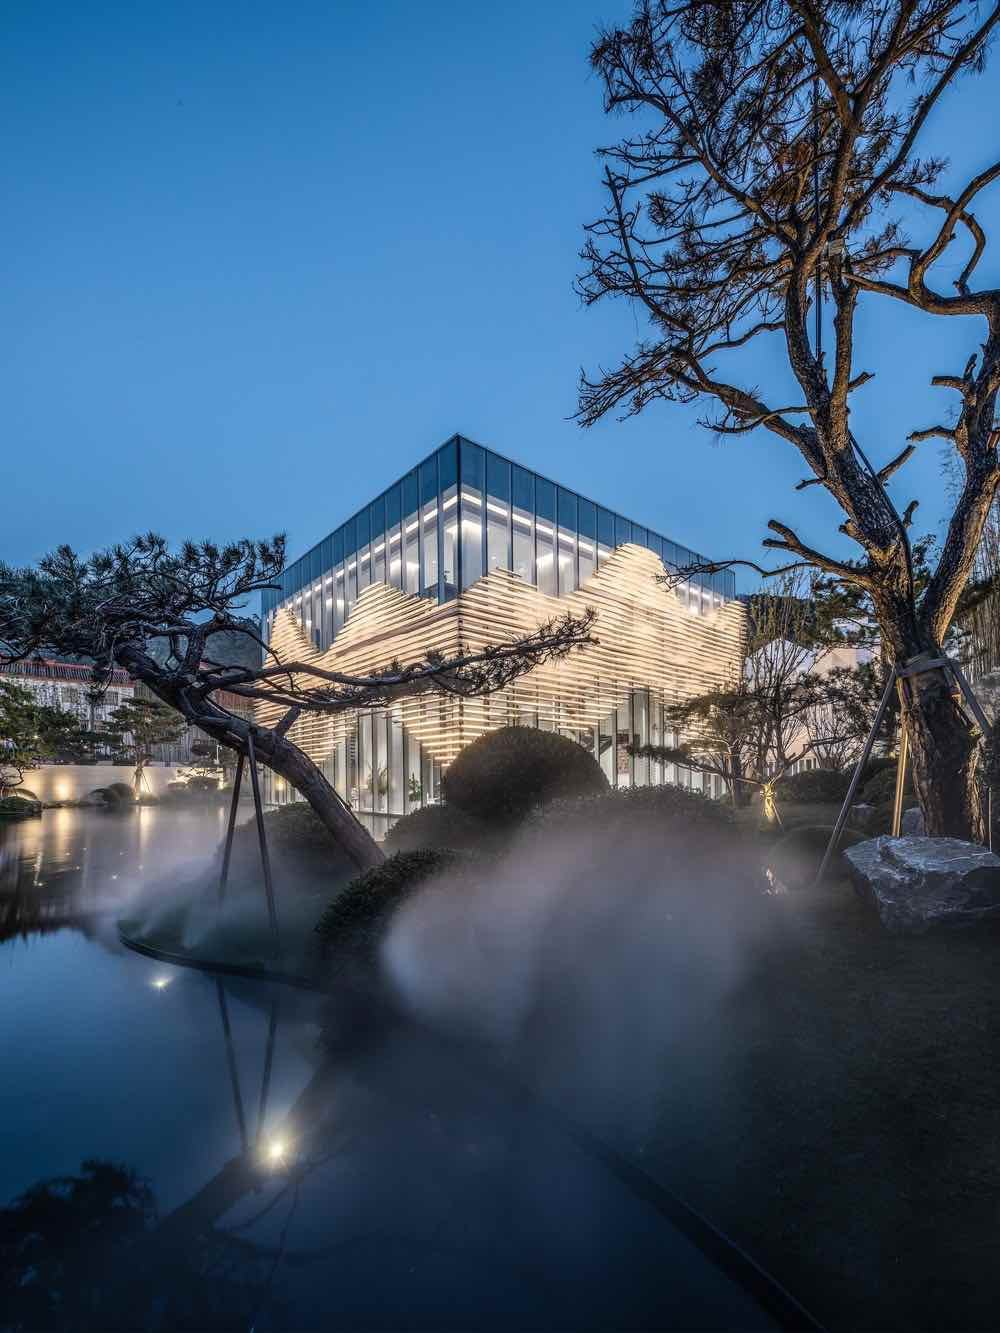 Shanxiao Pavilion by aoe studio - photo by Huang Ligang, courtesy of aoe architecture studio